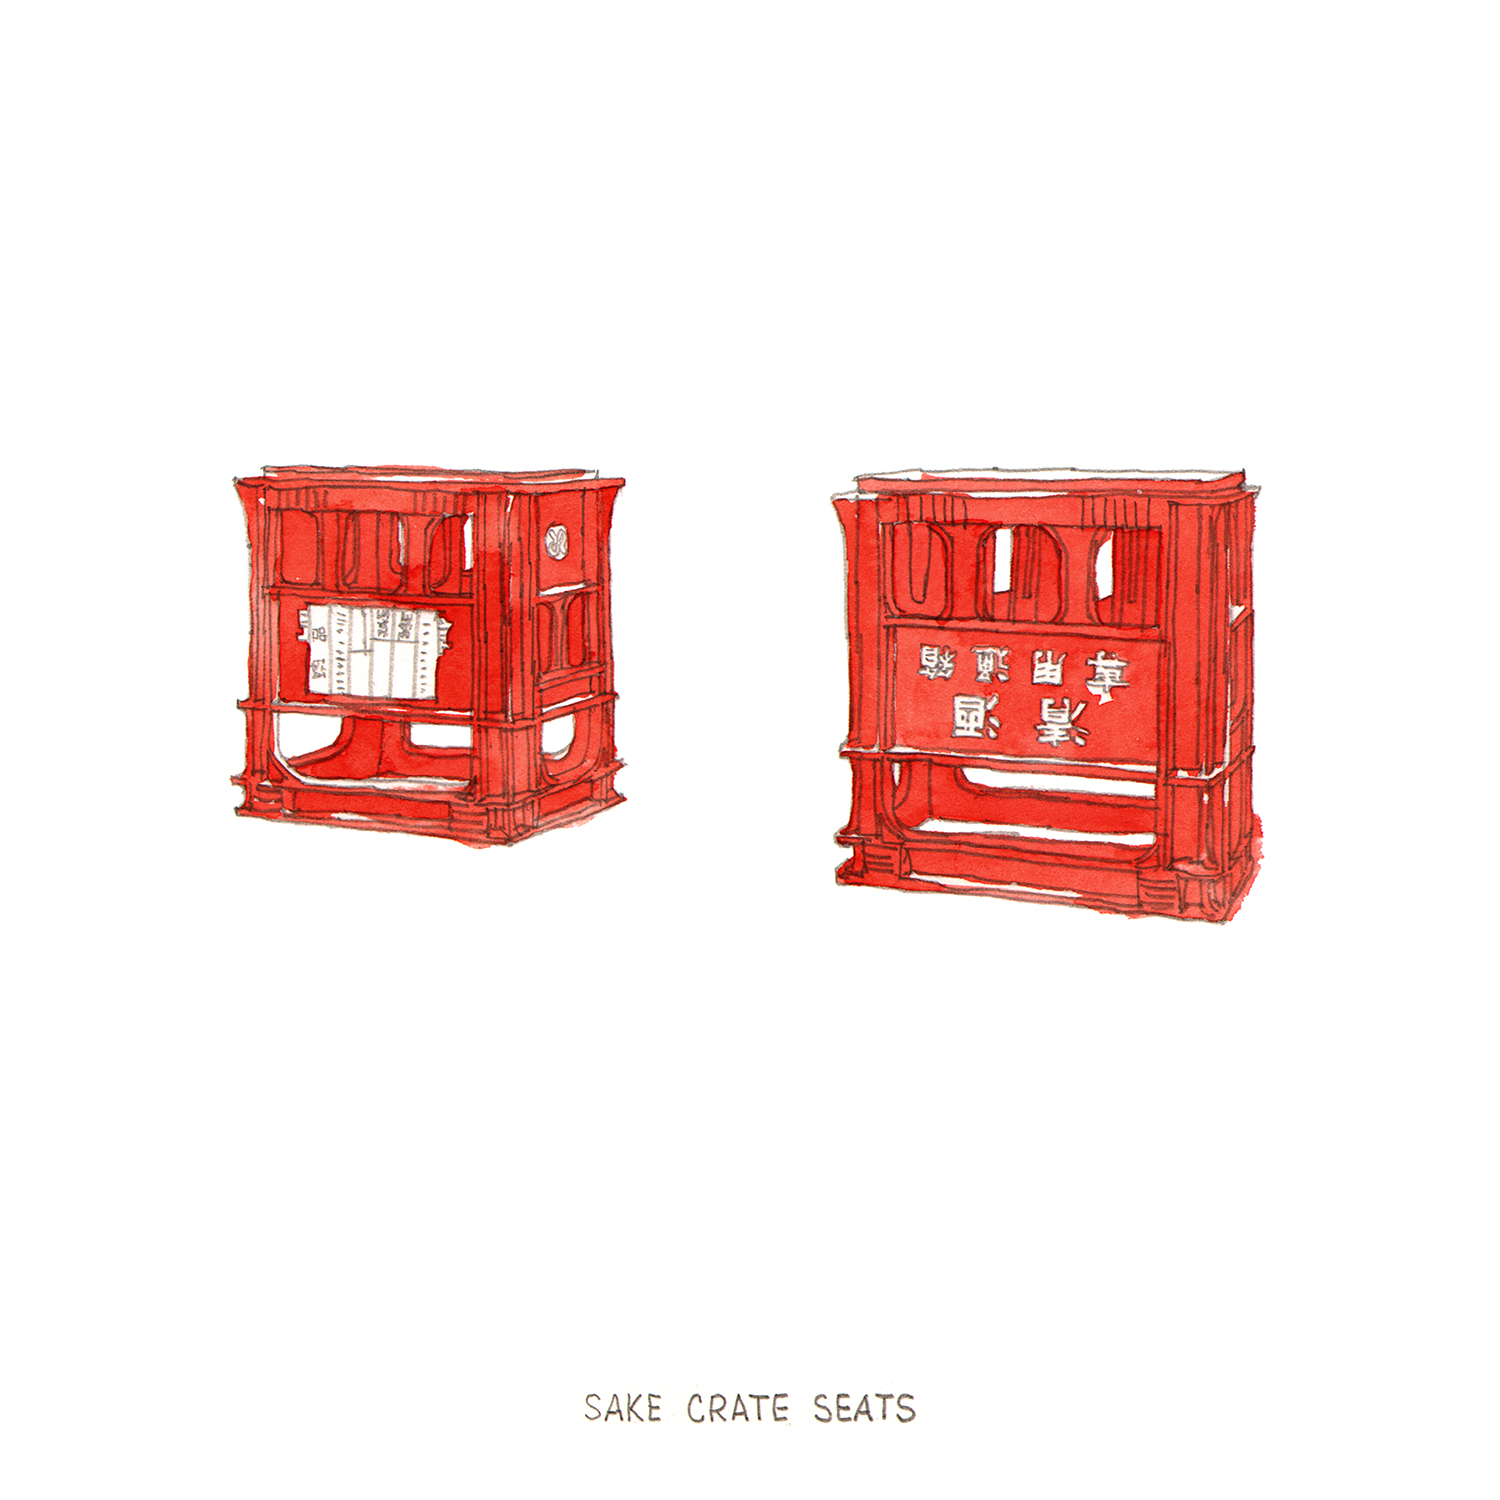 sake crate seat drawing.jpg